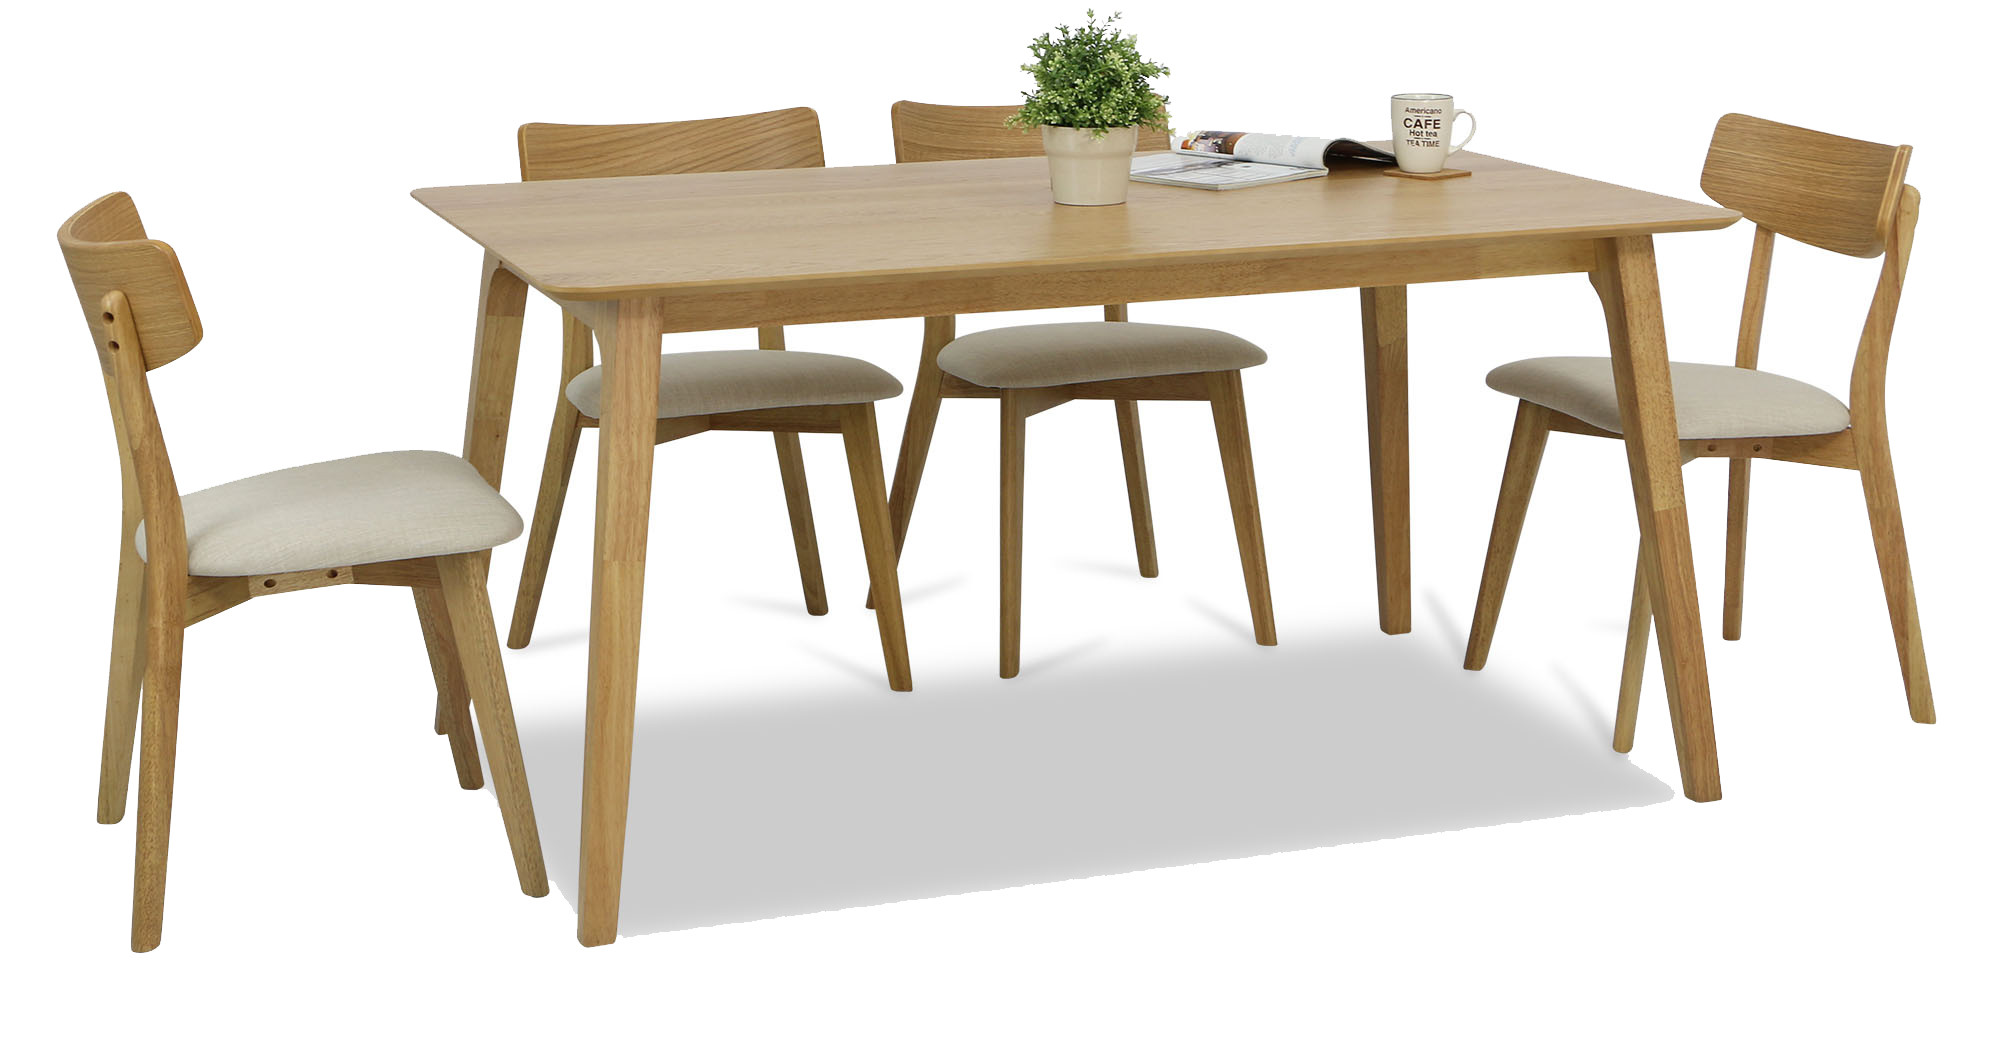 oak kitchen table sets pfister faucet repair loto dining set a 1 4 furniture home decor fortytwo 53 customer reviews